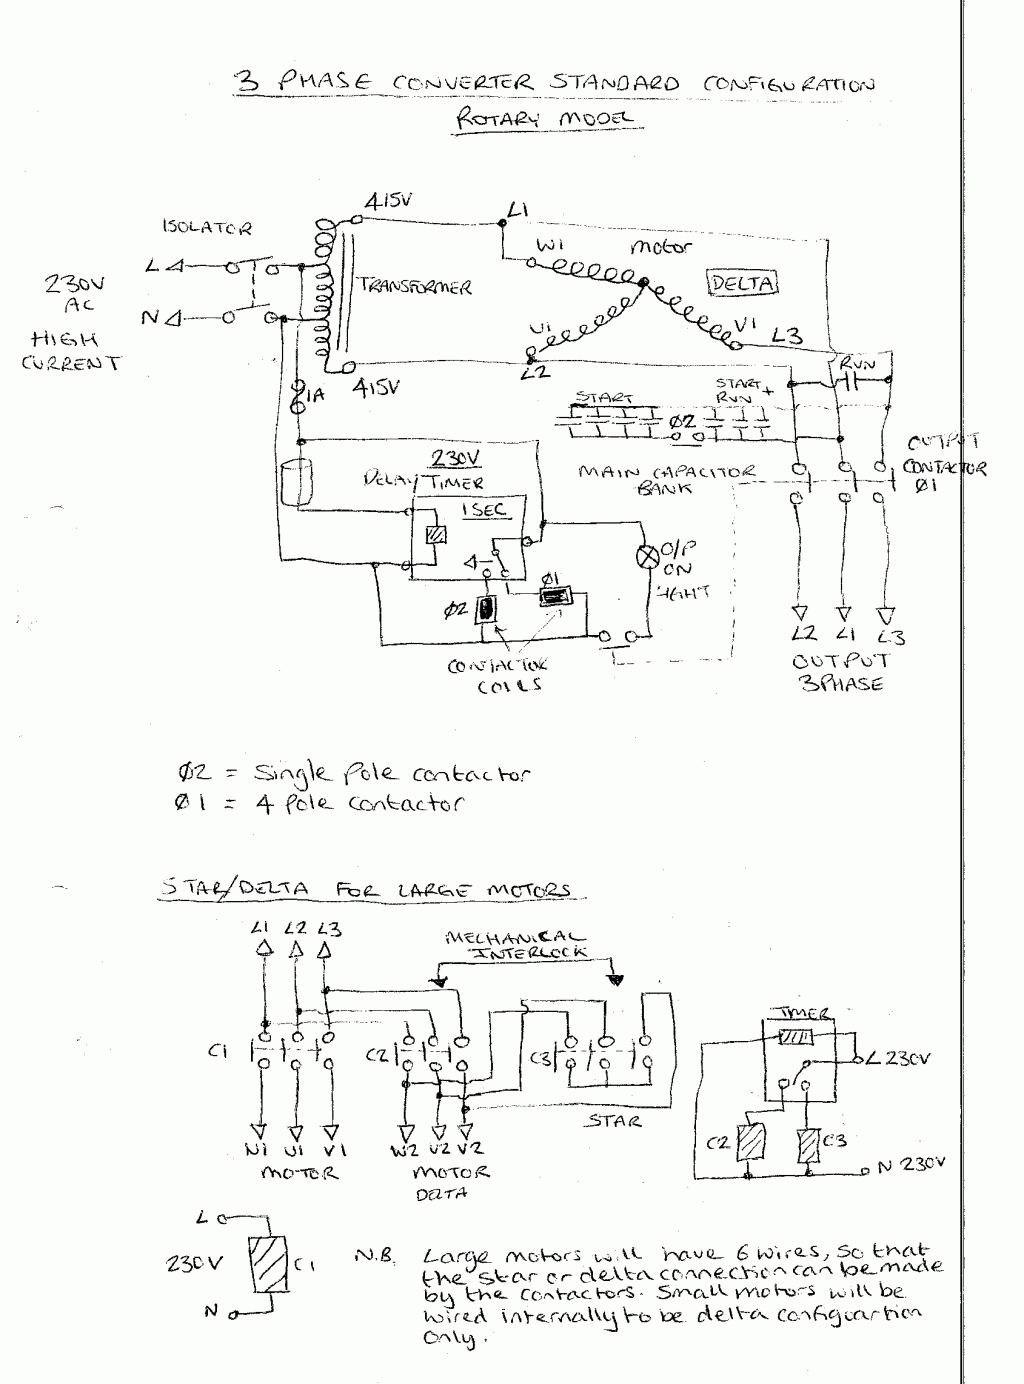 contactor overload wiring diagram electrical circuit digram Mypin TA4 Manual wiring diagram for contactor wiring diagram databasestandard contactor wiring diagram wiring library motor contactor wiring american